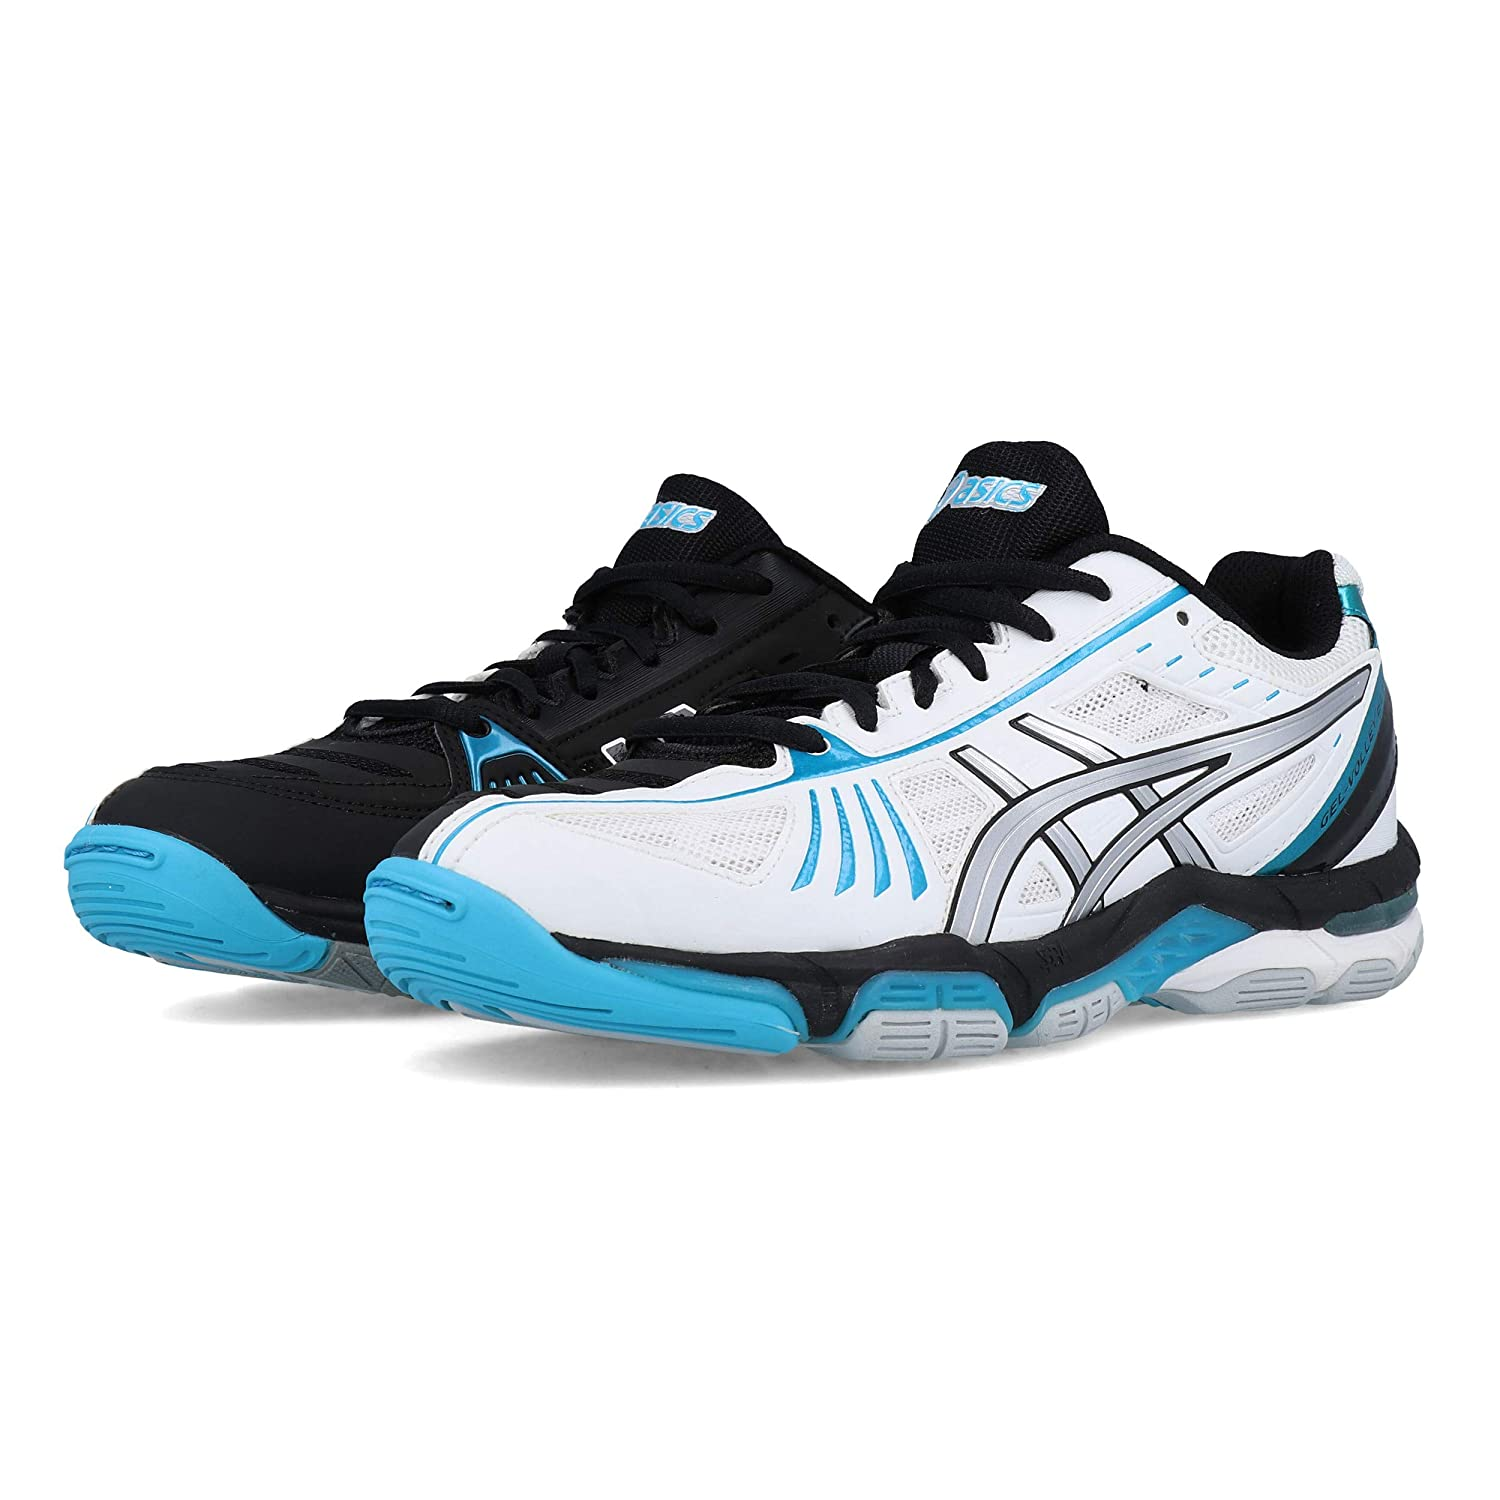 mizuno womens volleyball shoes size 8 x 3 free eb records